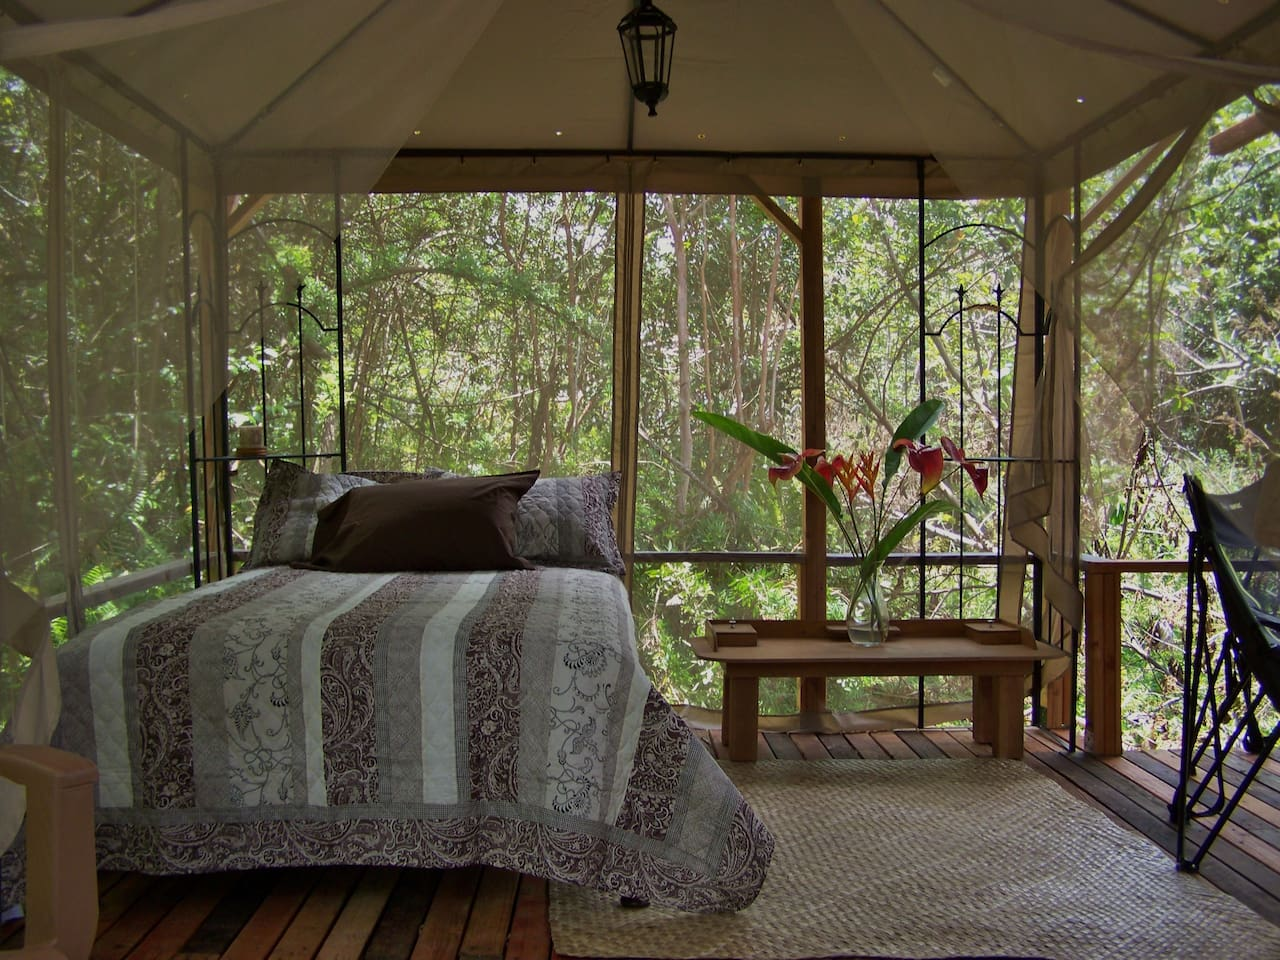 Relax in this tranquil setting at the Dragonfly.